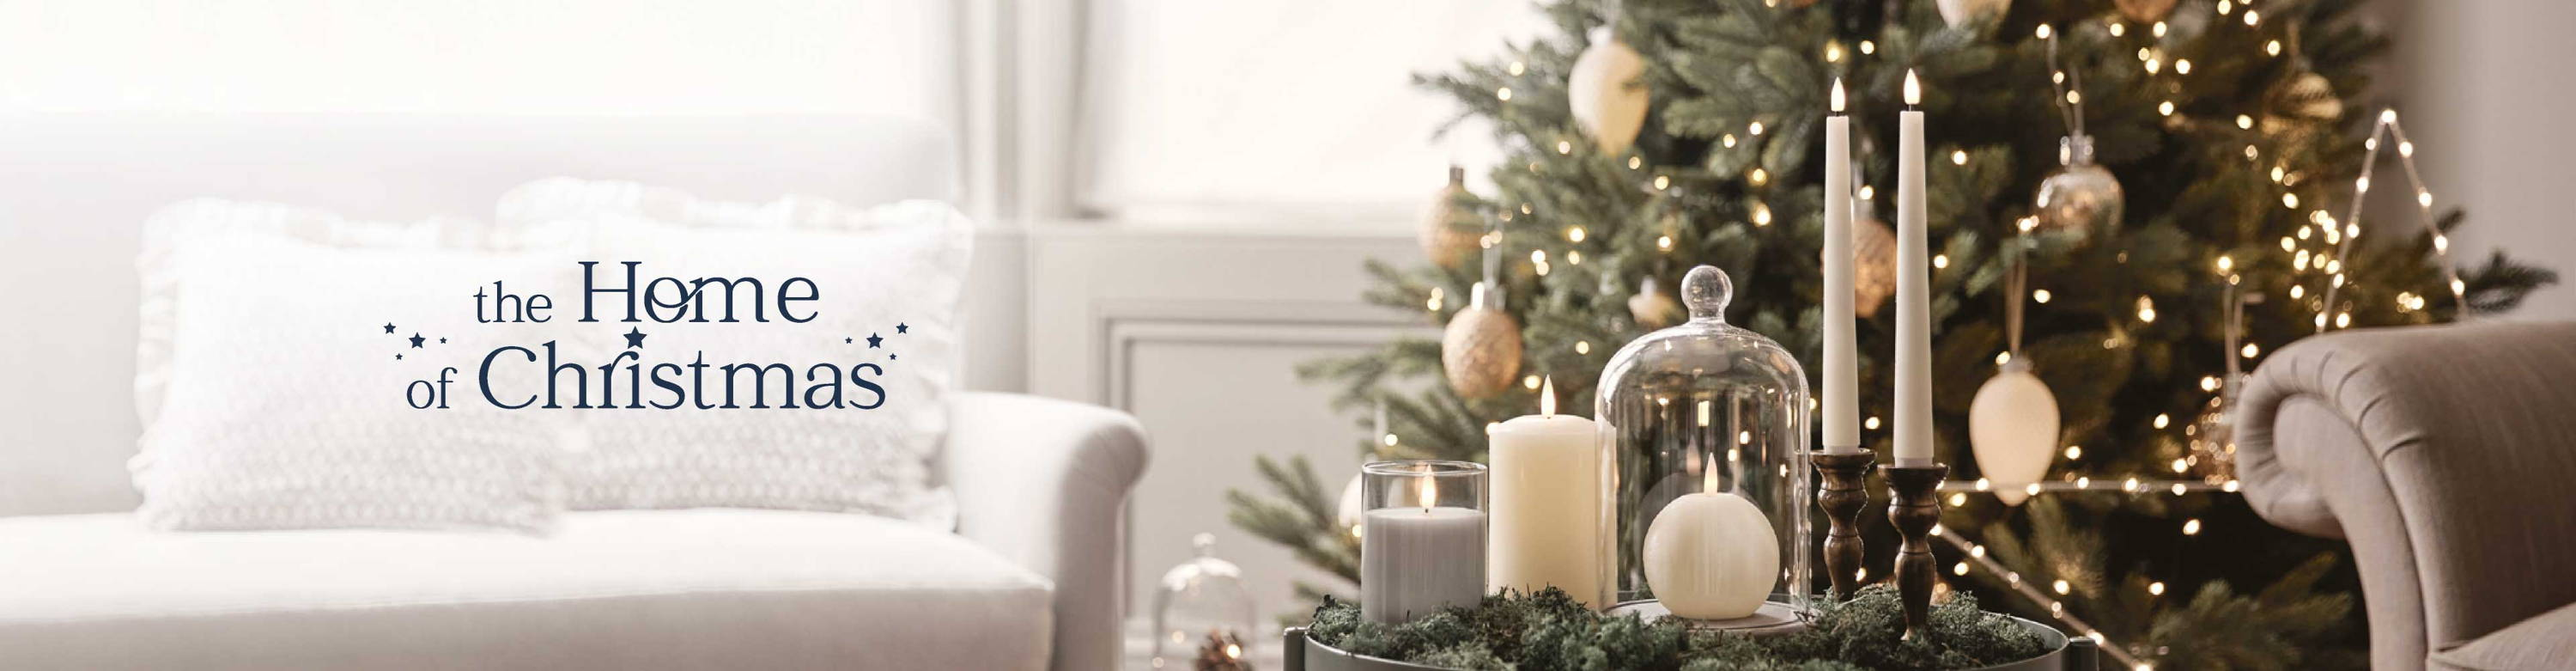 The Home of Christmas living room with a Christmas tree lit with warm white lights, candles and stars